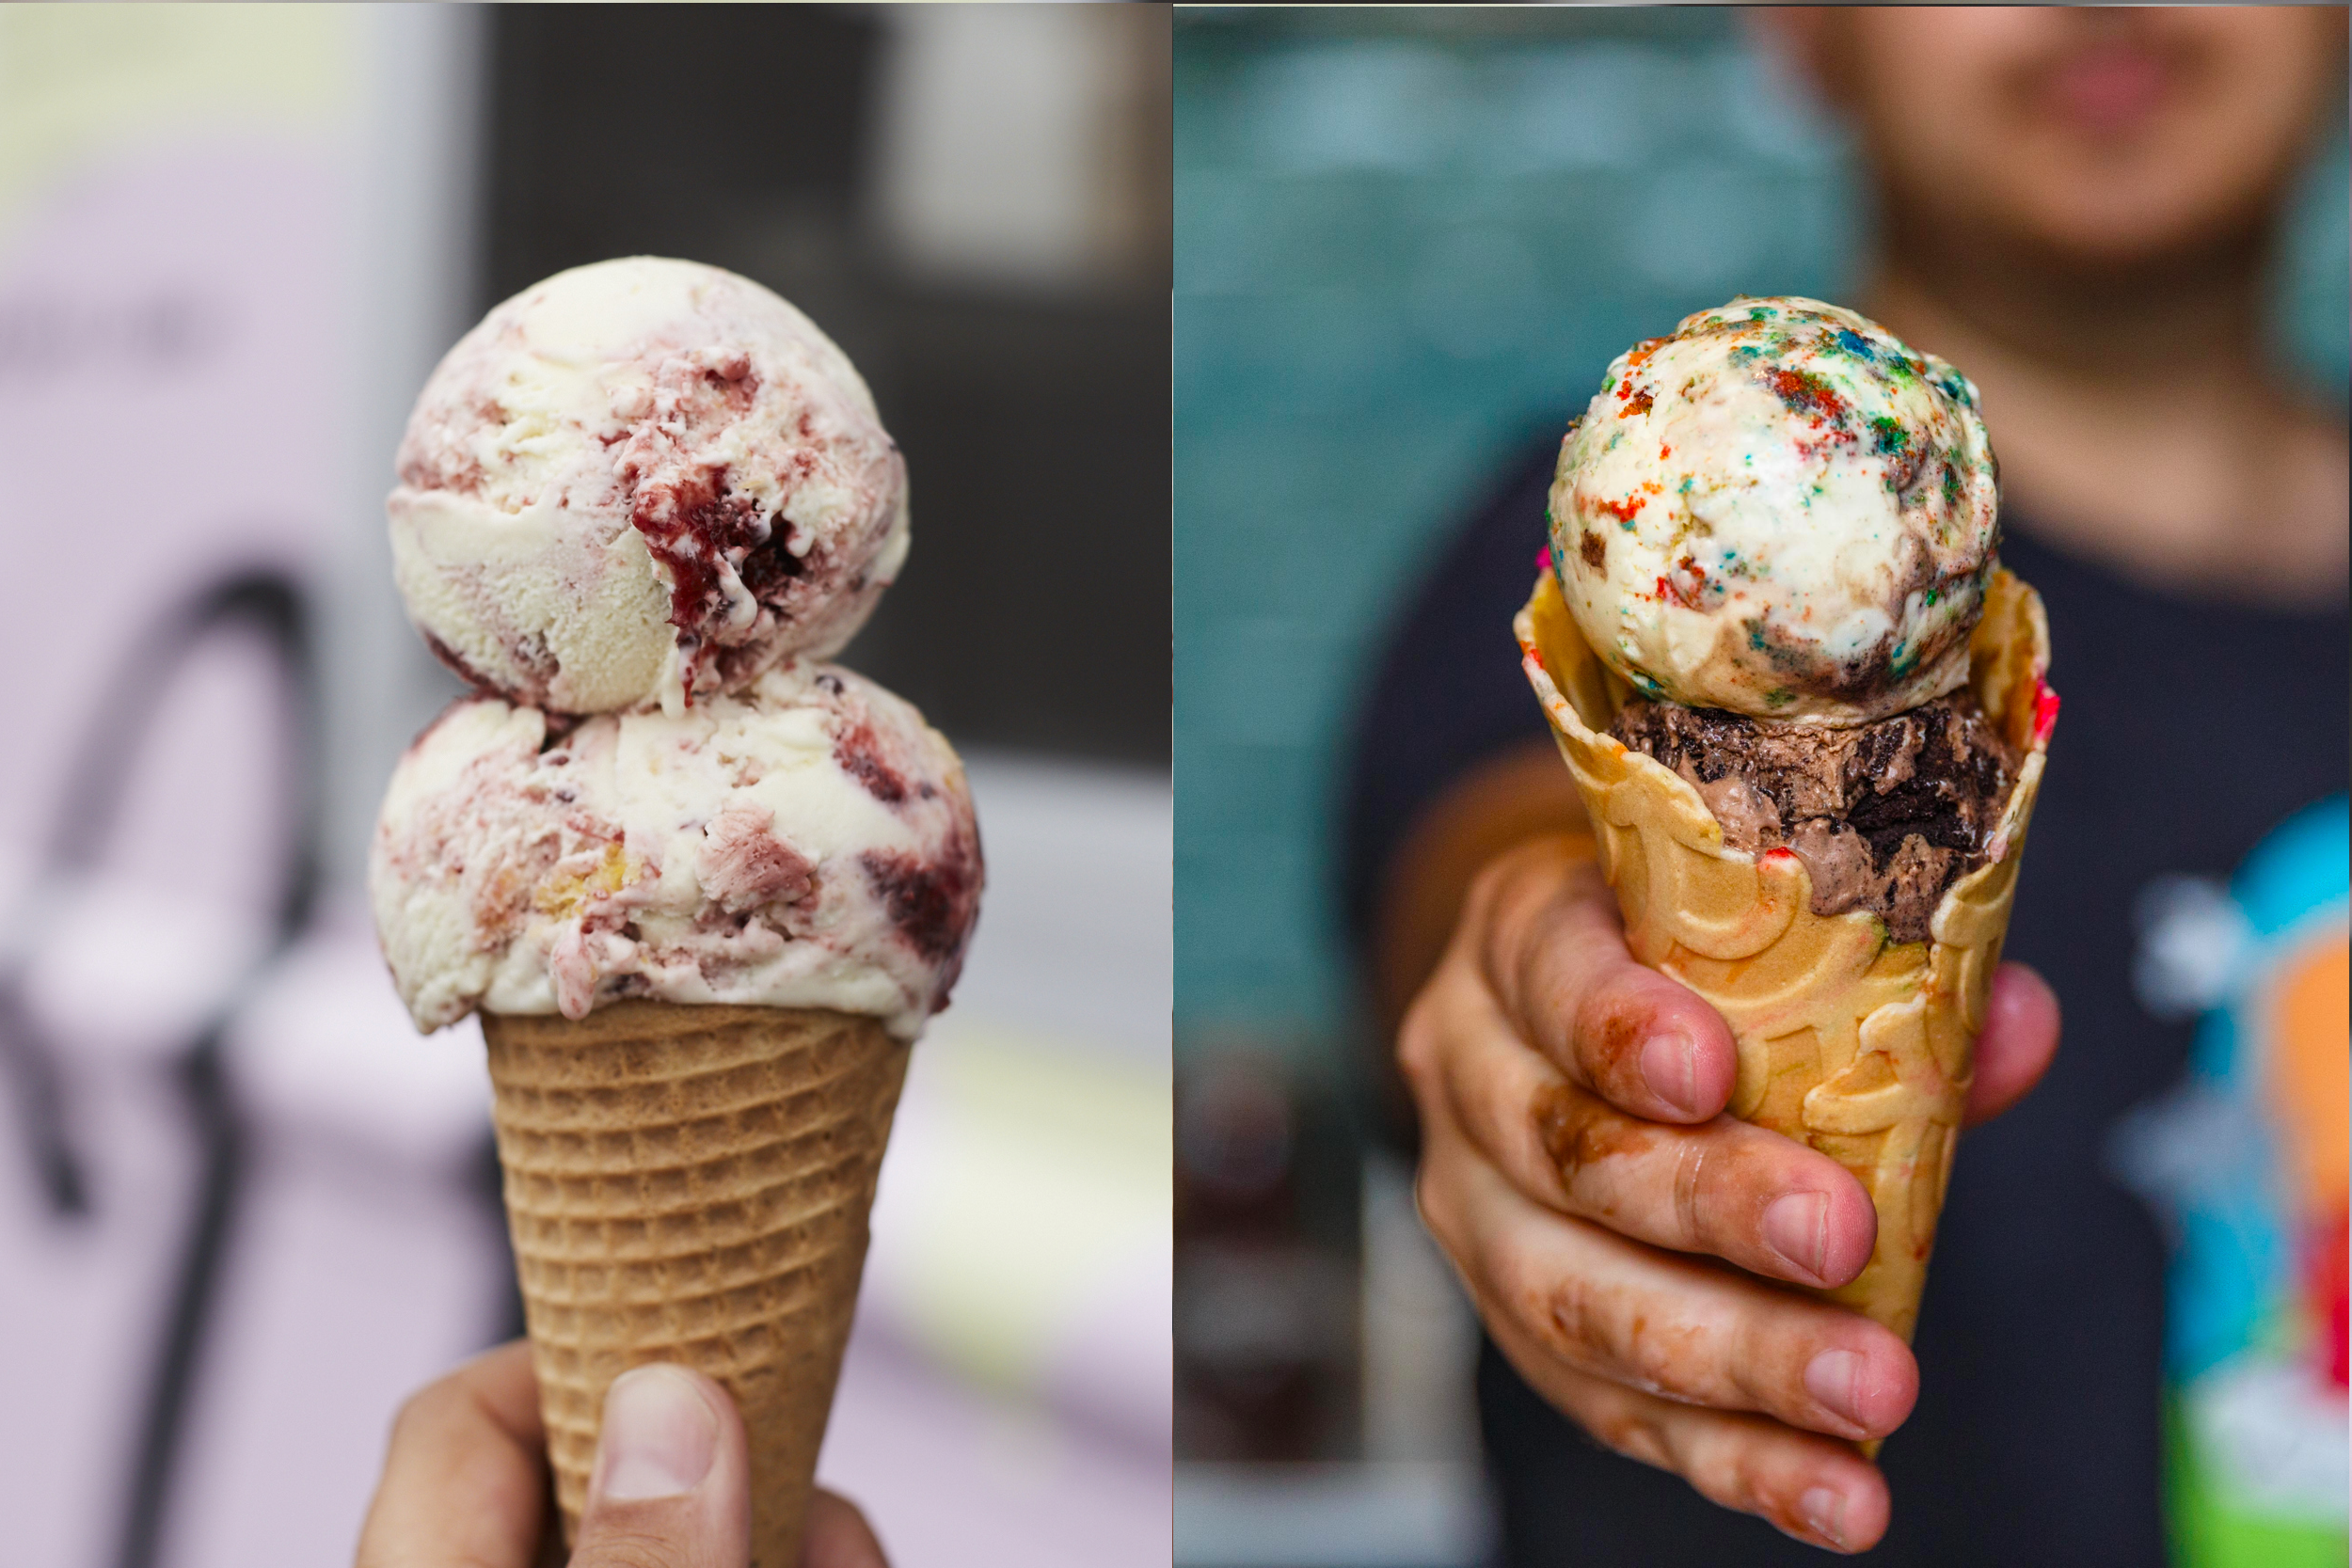 Two side by side images of scoops of ice cream in a cone, with Van Leeuwen on the left and Ample Hills on the right